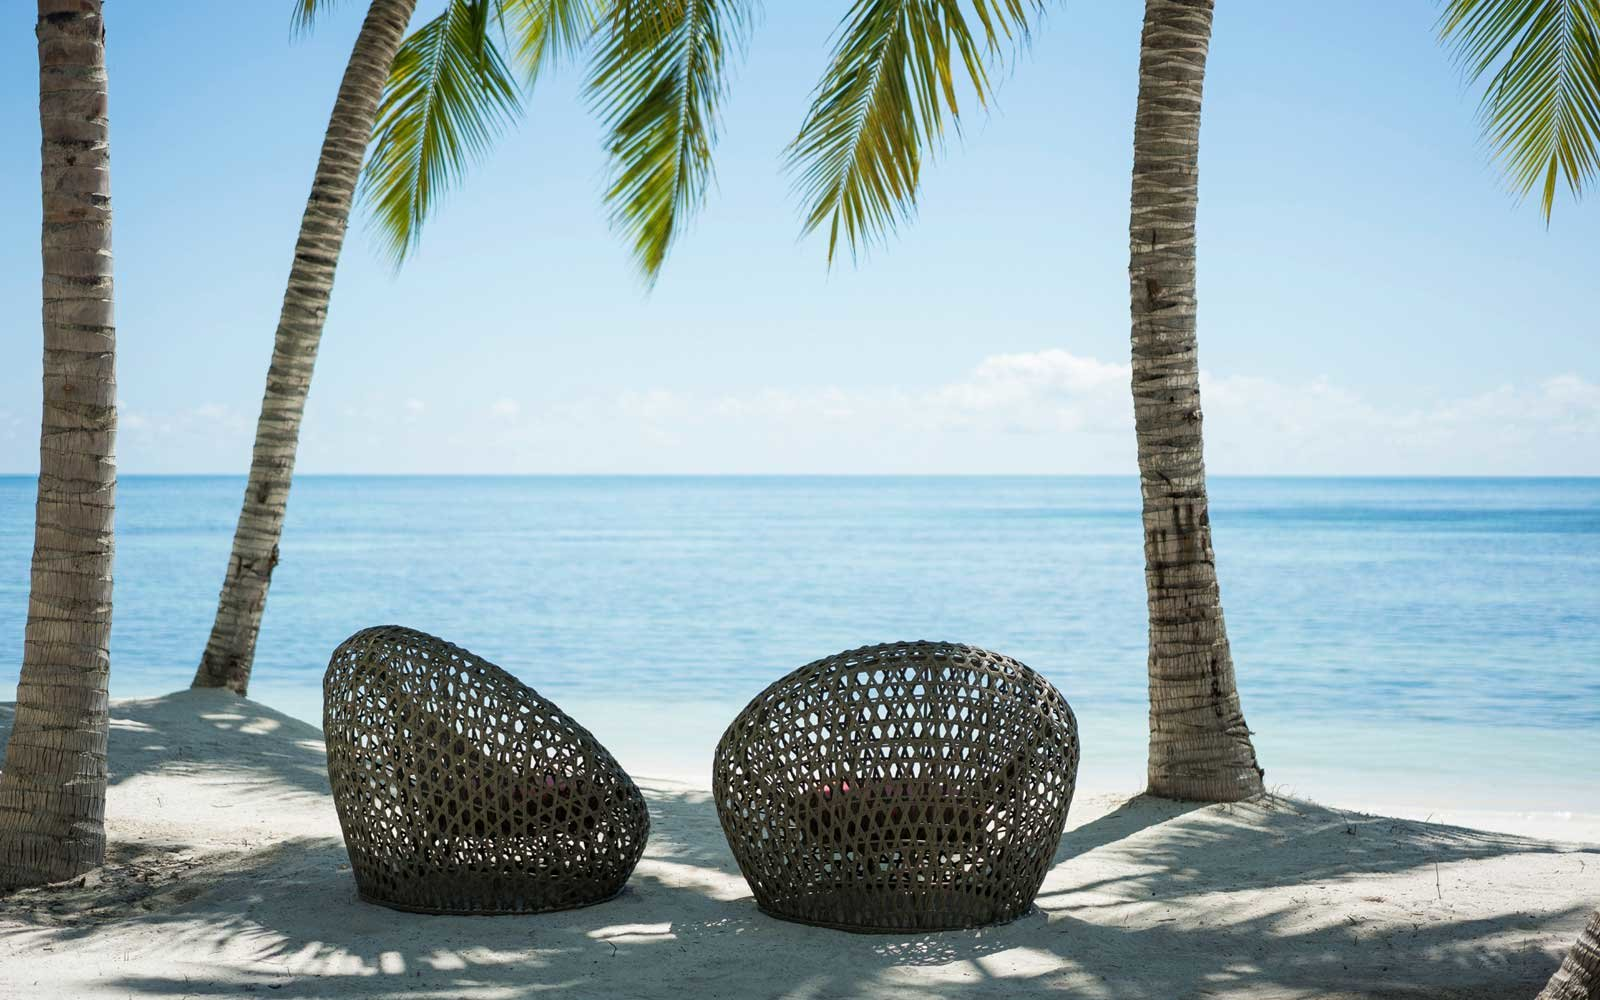 Four Seasons Desroches Island rester in the Seychelles